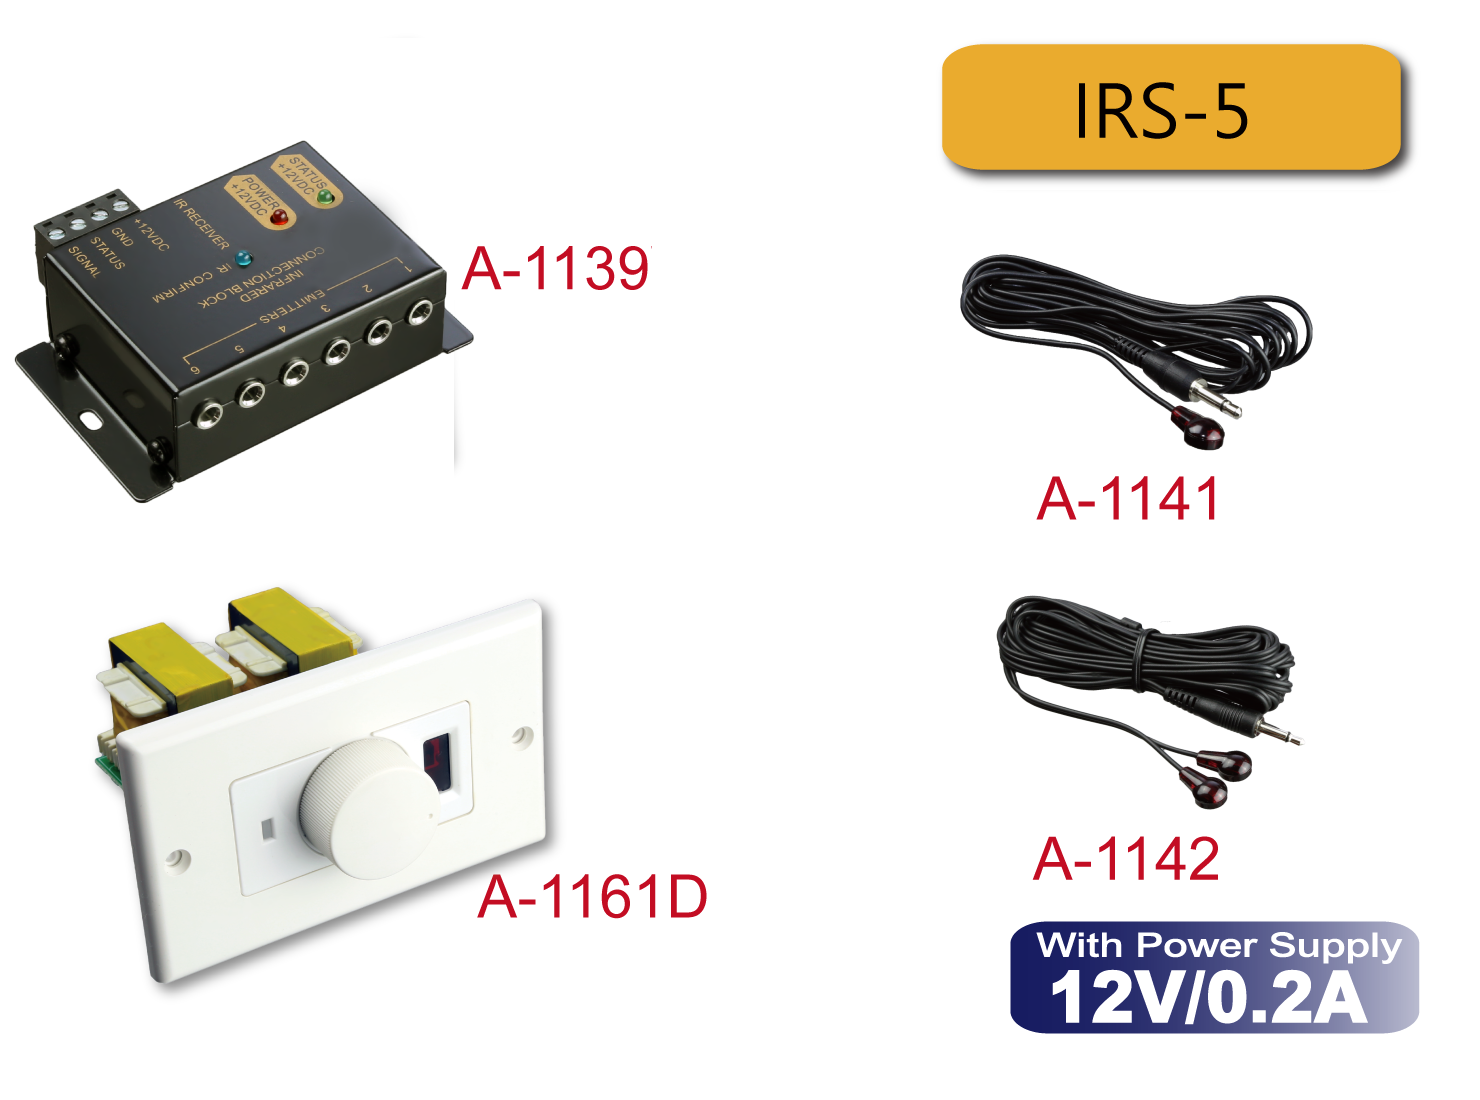 IRS-5 : In-Wall Volume Control with IR Kit